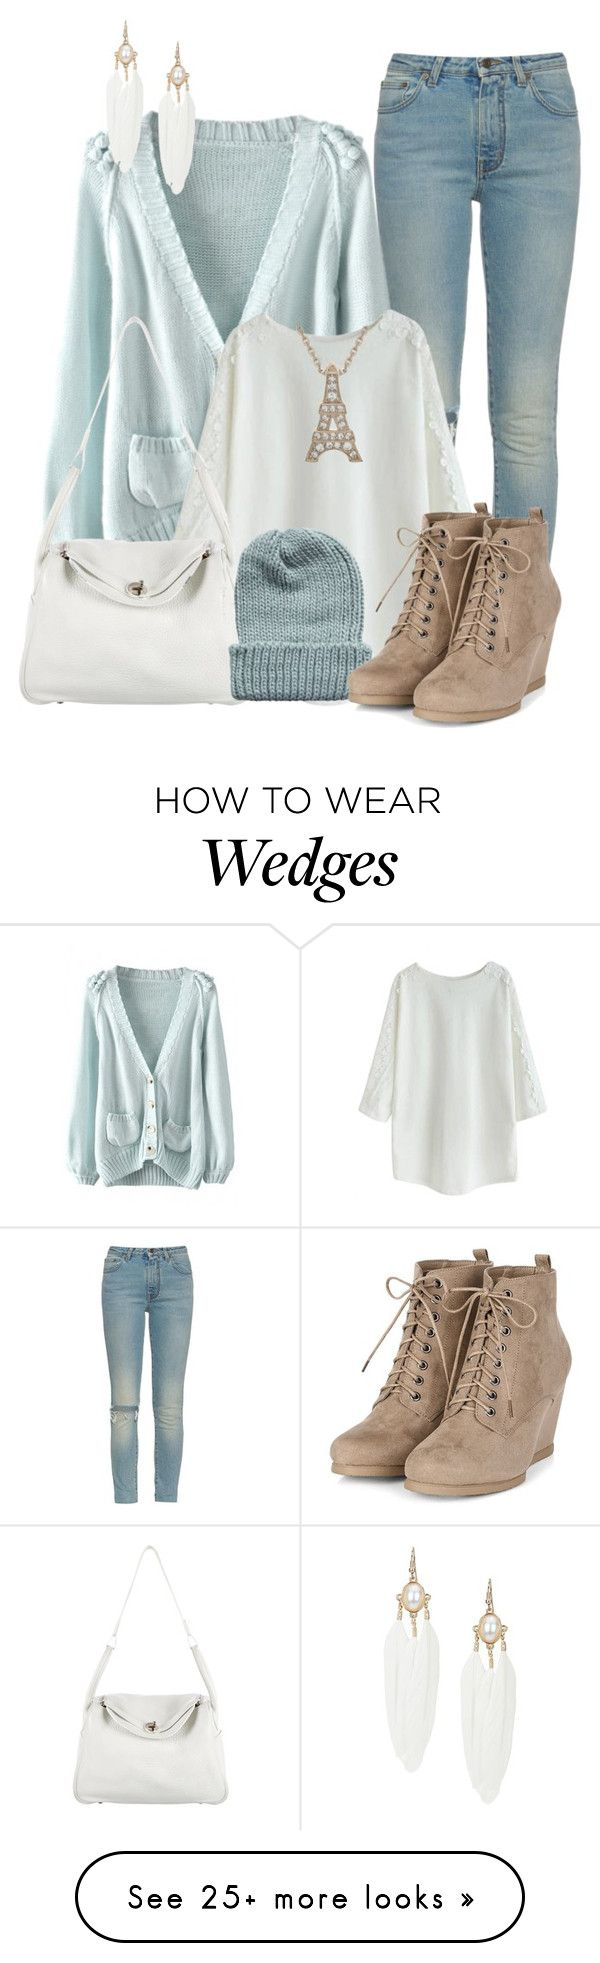 """Pastel Winter"" by lchar on Polyvore featuring mode, Yves Saint Laurent, Hermès en Rut&Circle"